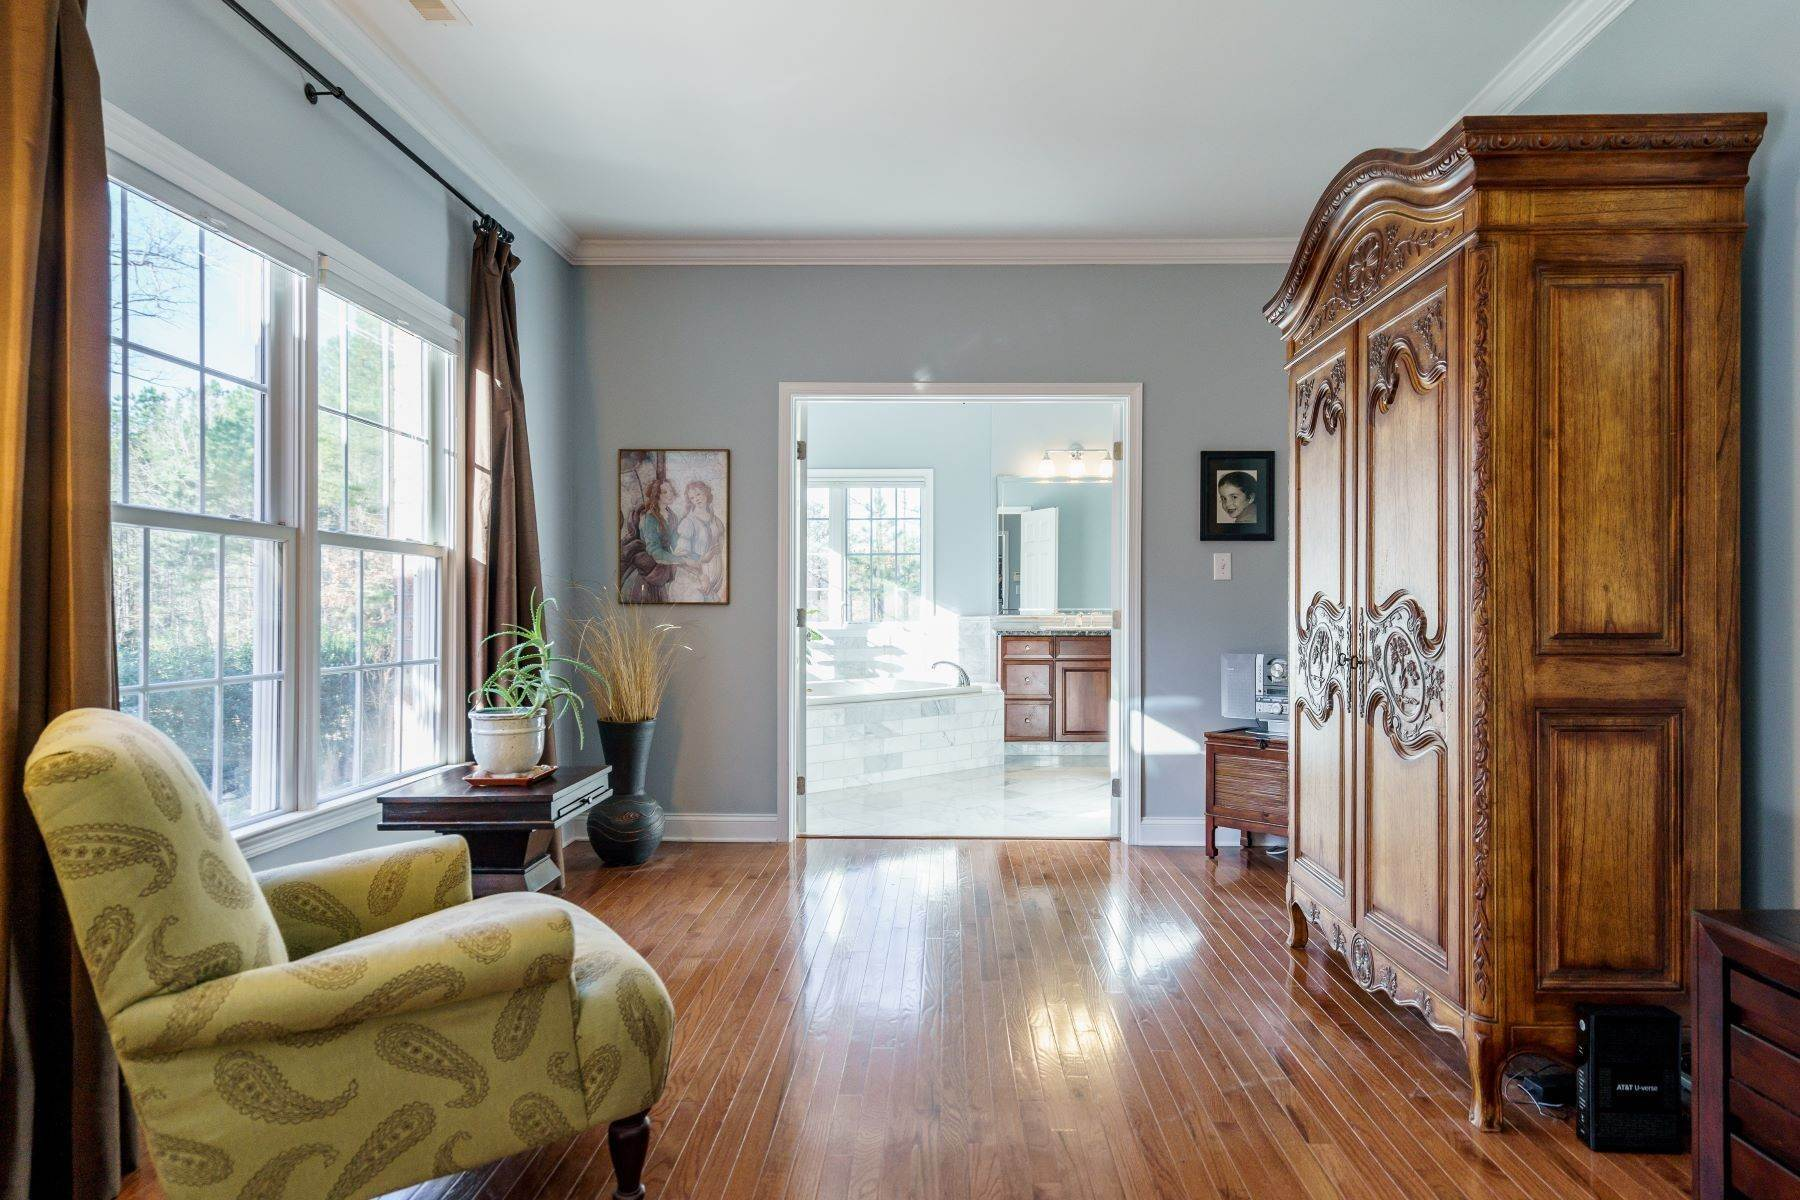 25. Single Family Homes for Sale at Beautiful Stately Home in The Oaks at Meadowridge 4705 Brook Top Court Raleigh, North Carolina 27606 United States